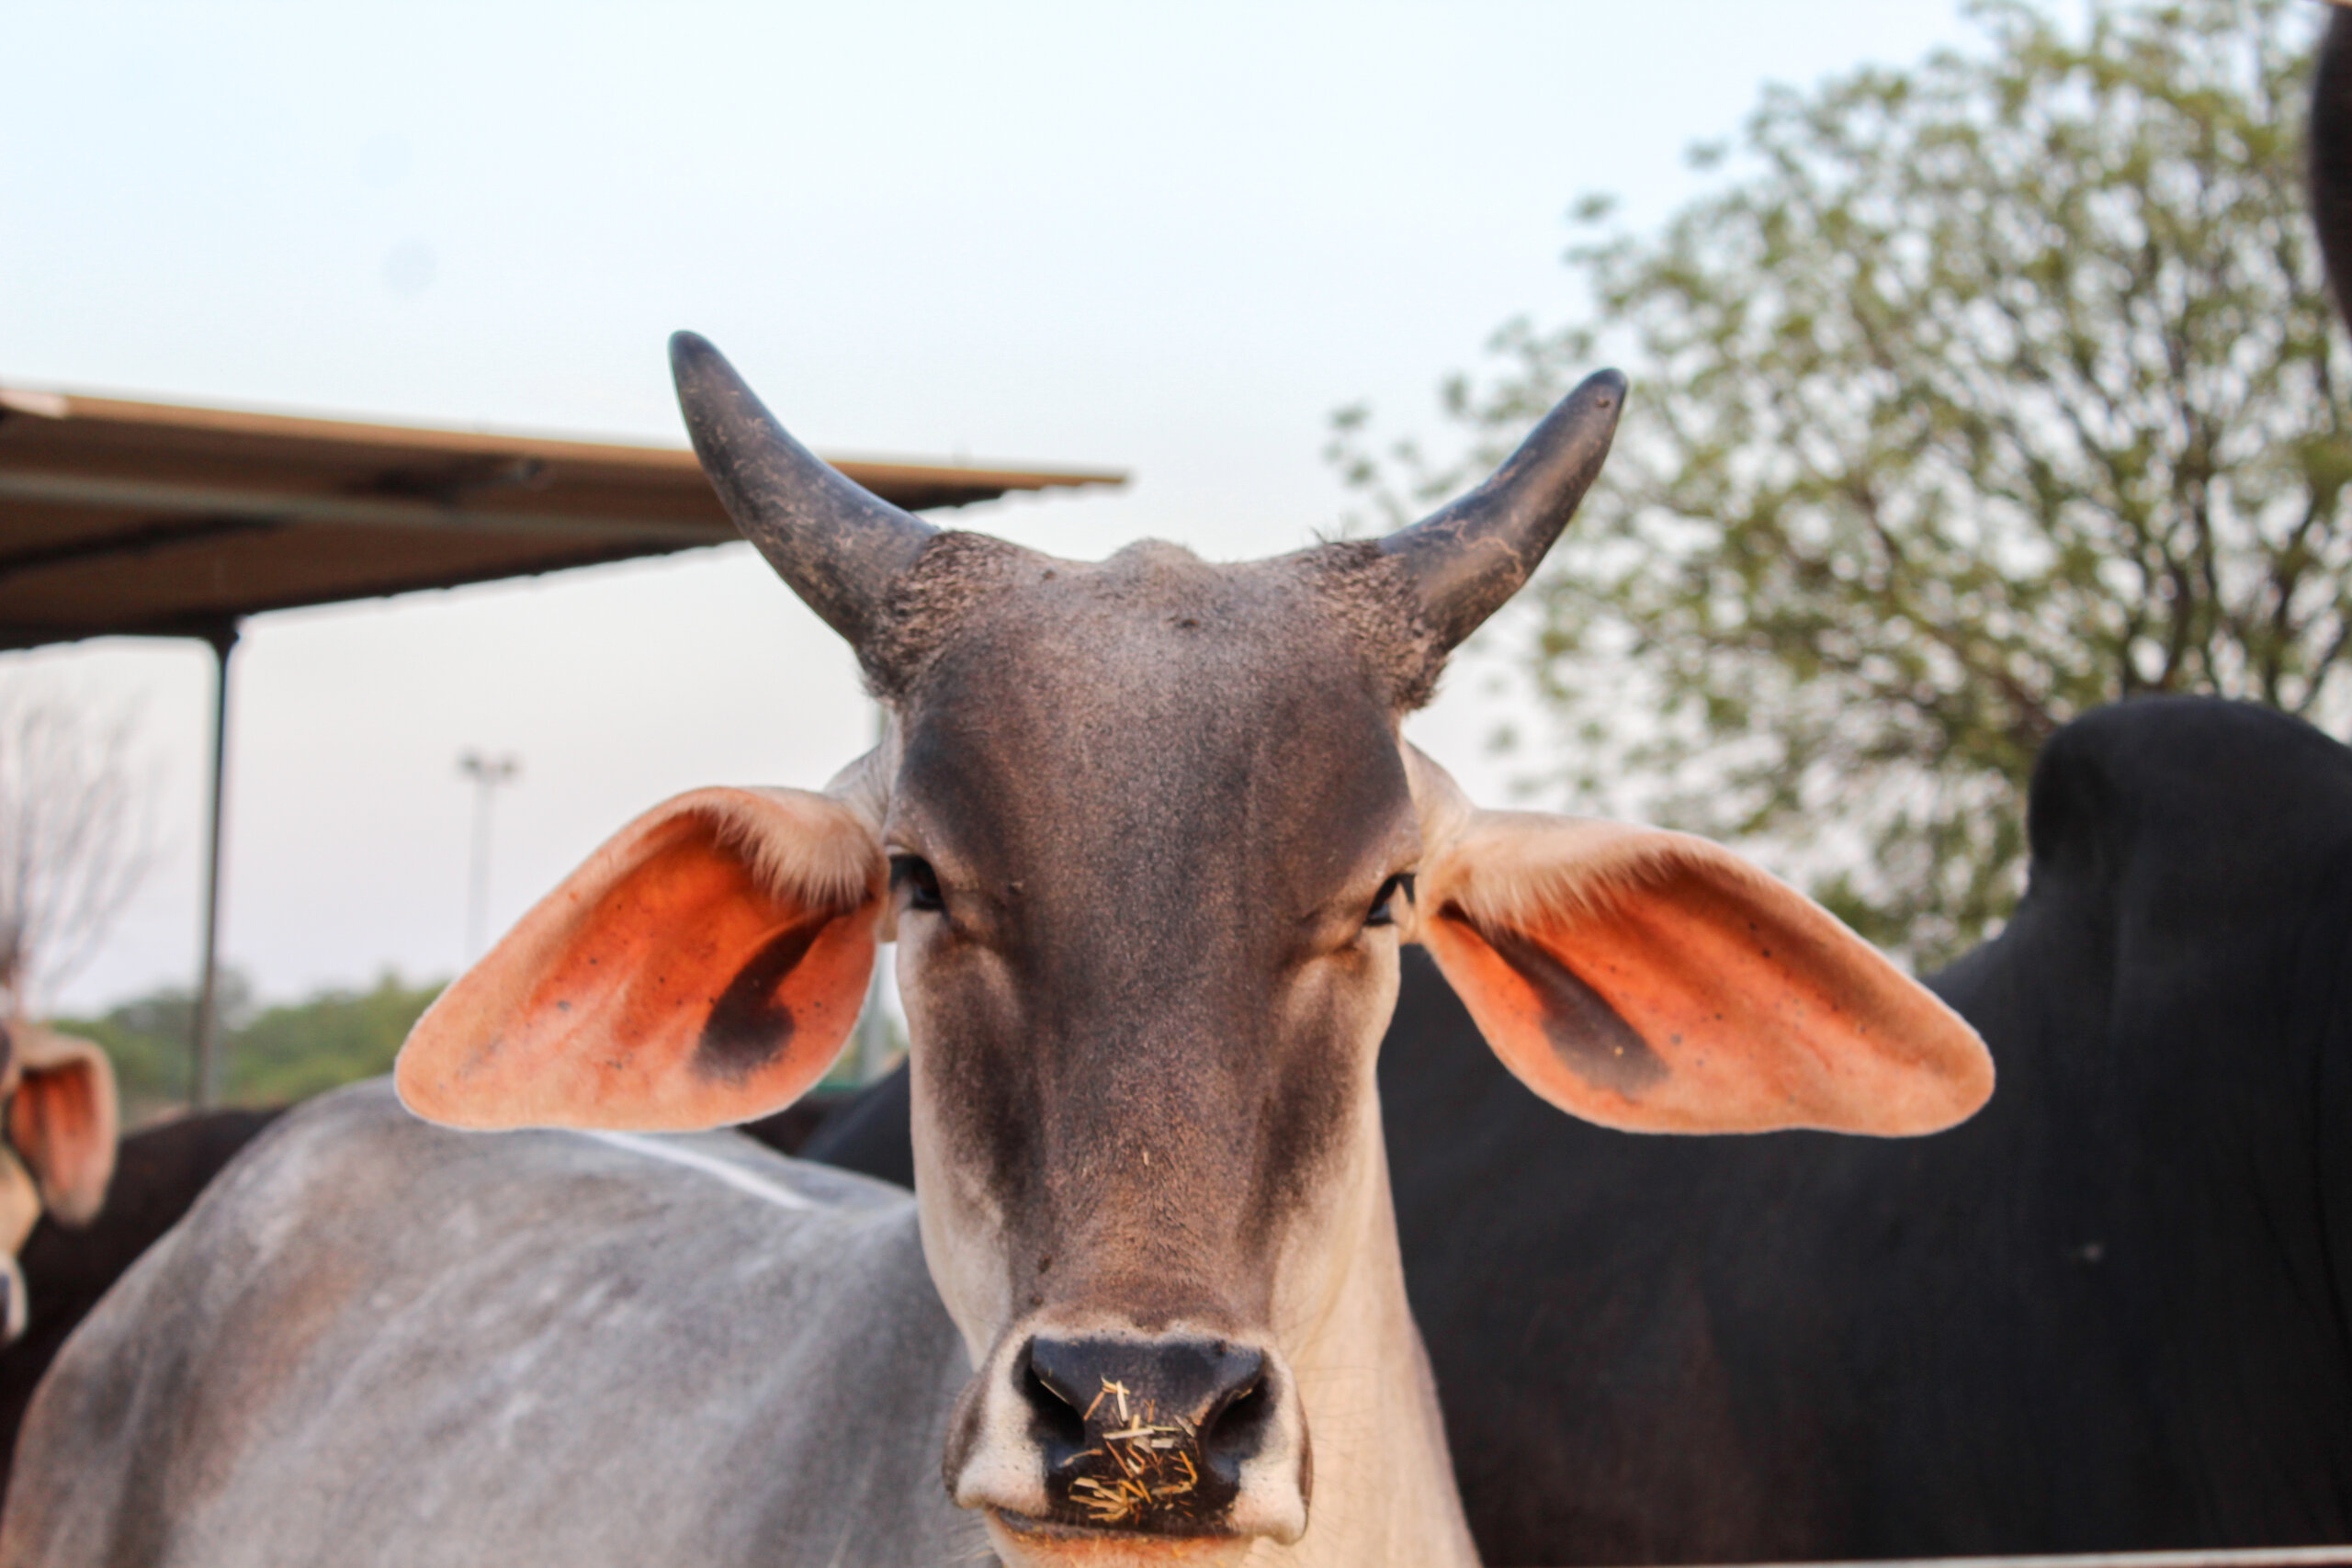 Cow photo shot by Juhi for pregnant cow case